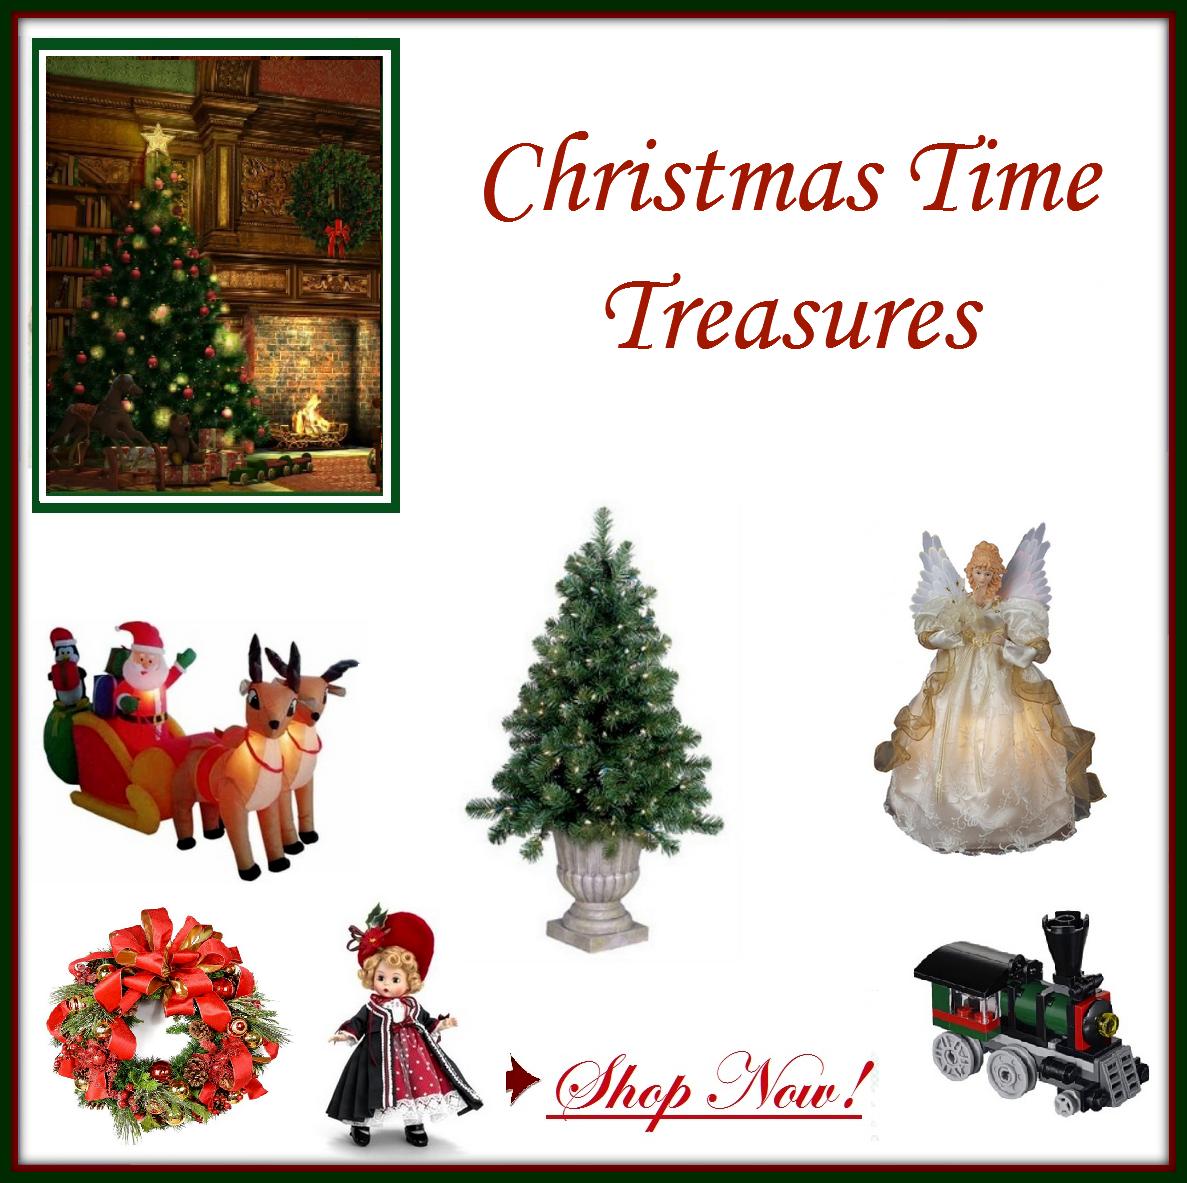 Christmas Time Treasures is a site where you can find everything Christmas including recipes, decorations, gifts and more! We Look Forward to Your Visit!